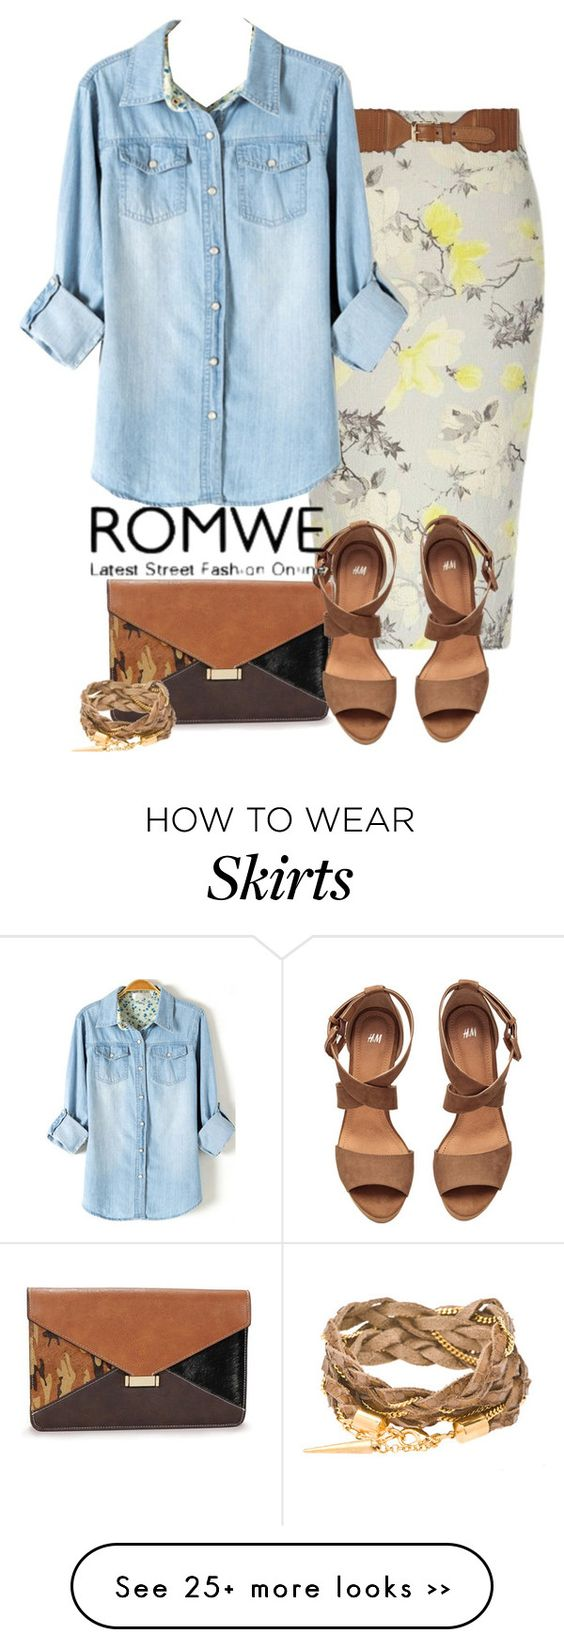 """""""Chambray Shirt & Floral Skirt"""" by catherinem on Polyvore featuring River Island, Dorothy Perkins, H&M, romwe and contestentry"""